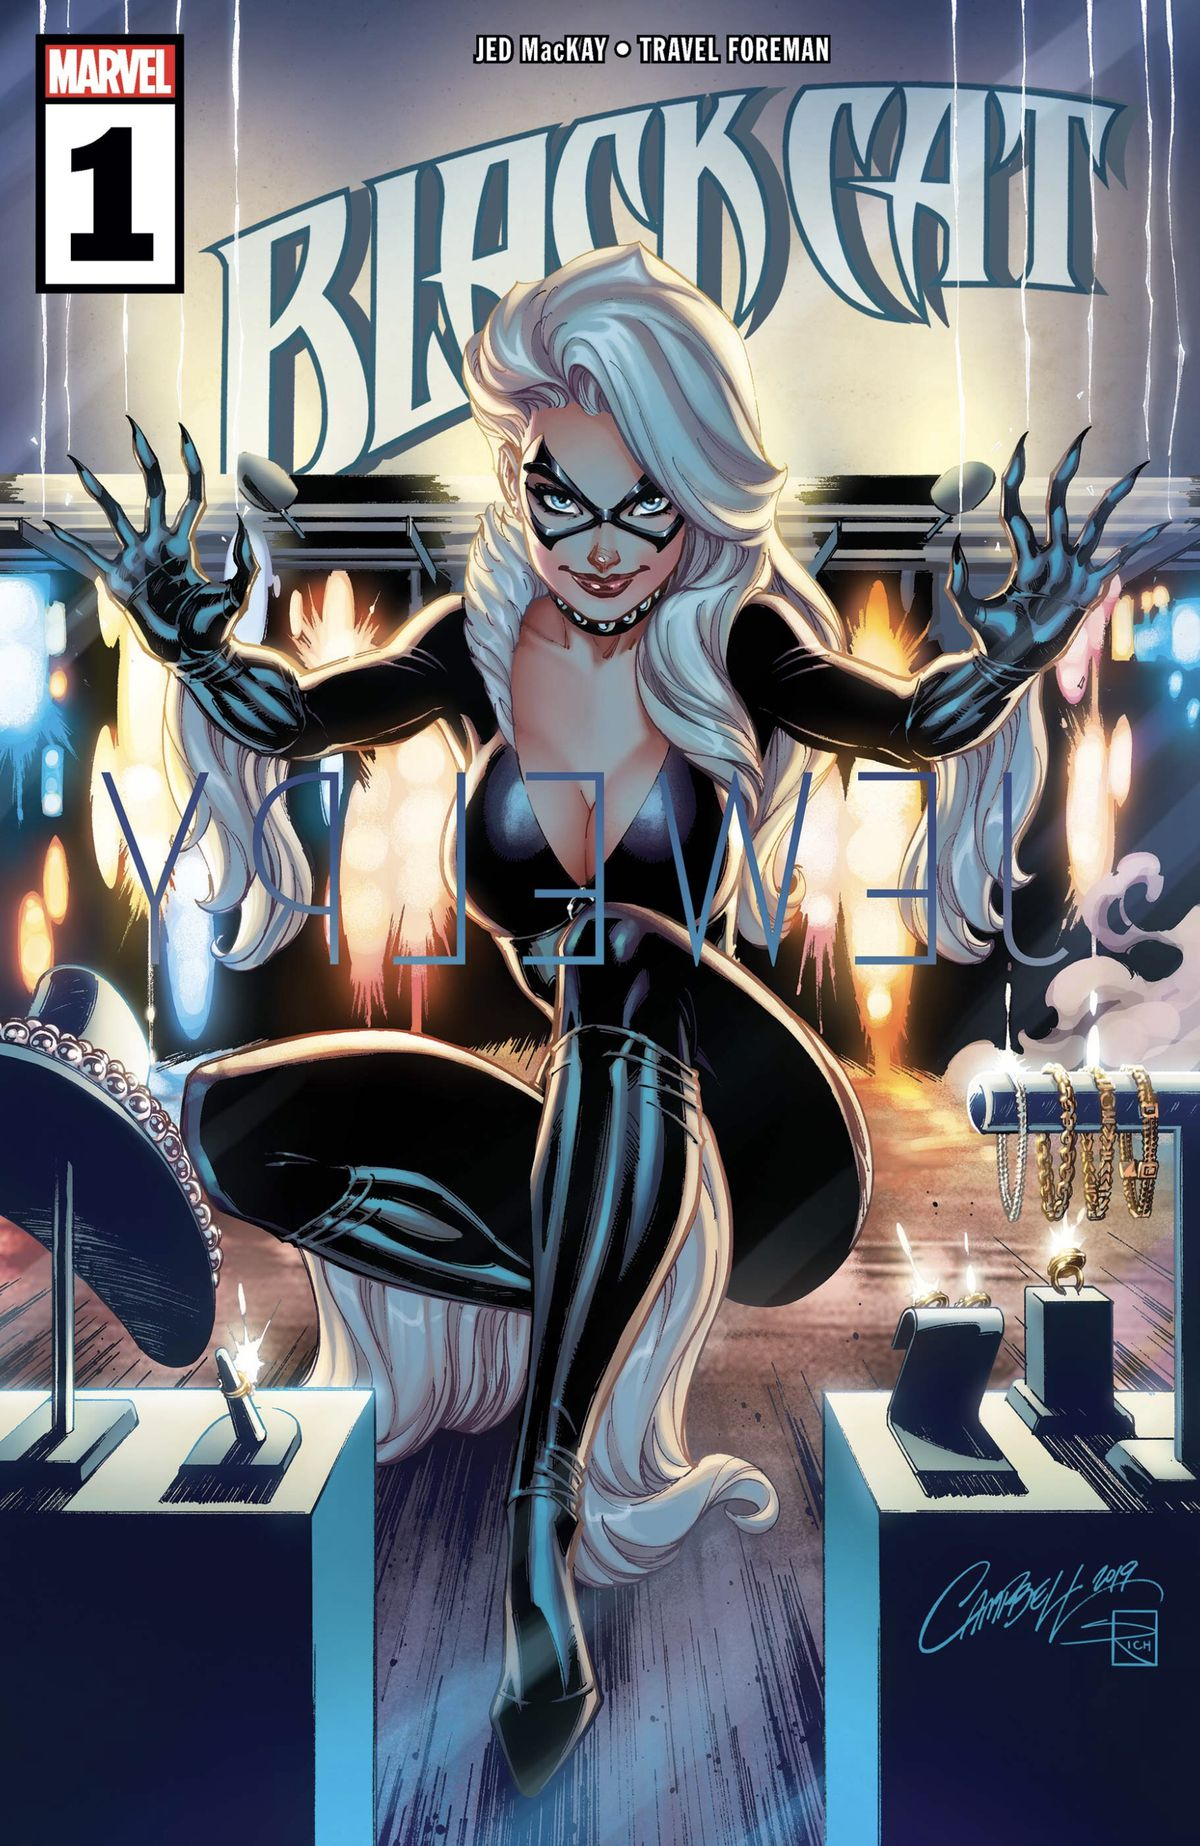 Felicia Hardy, the Black Cat, sits on a balcony, claws scratching at the glass in front of a display of jewelry, on the cover of Black Cat #1, Marvel Comics (2019).